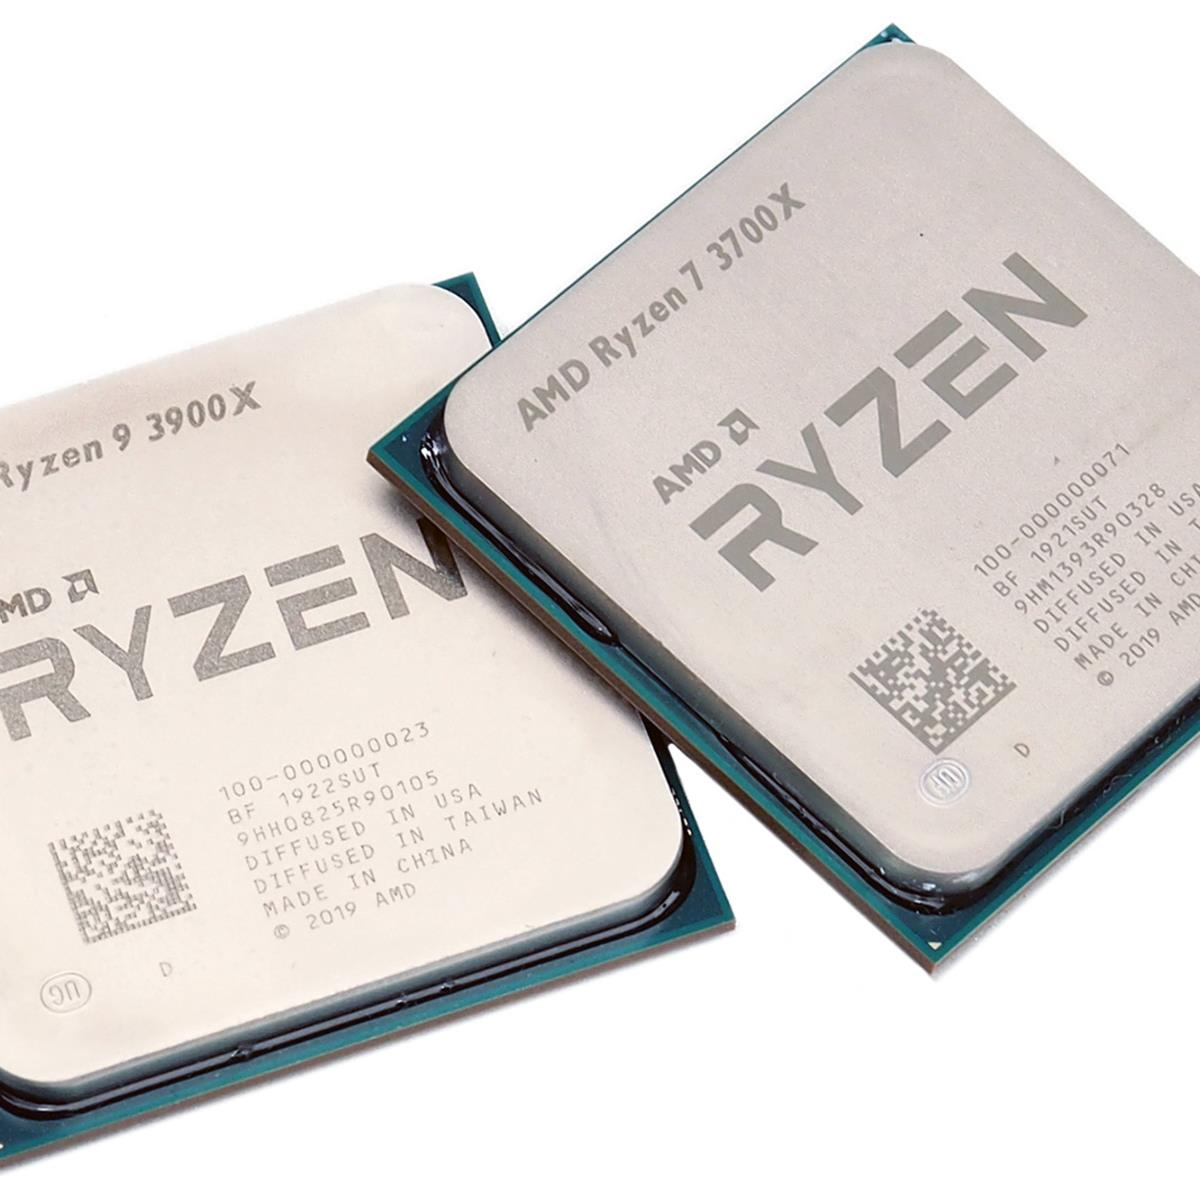 AMD Ryzen 9 3900X And Ryzen 7 3700X Zen 2 Review: Zen 2 Is Here